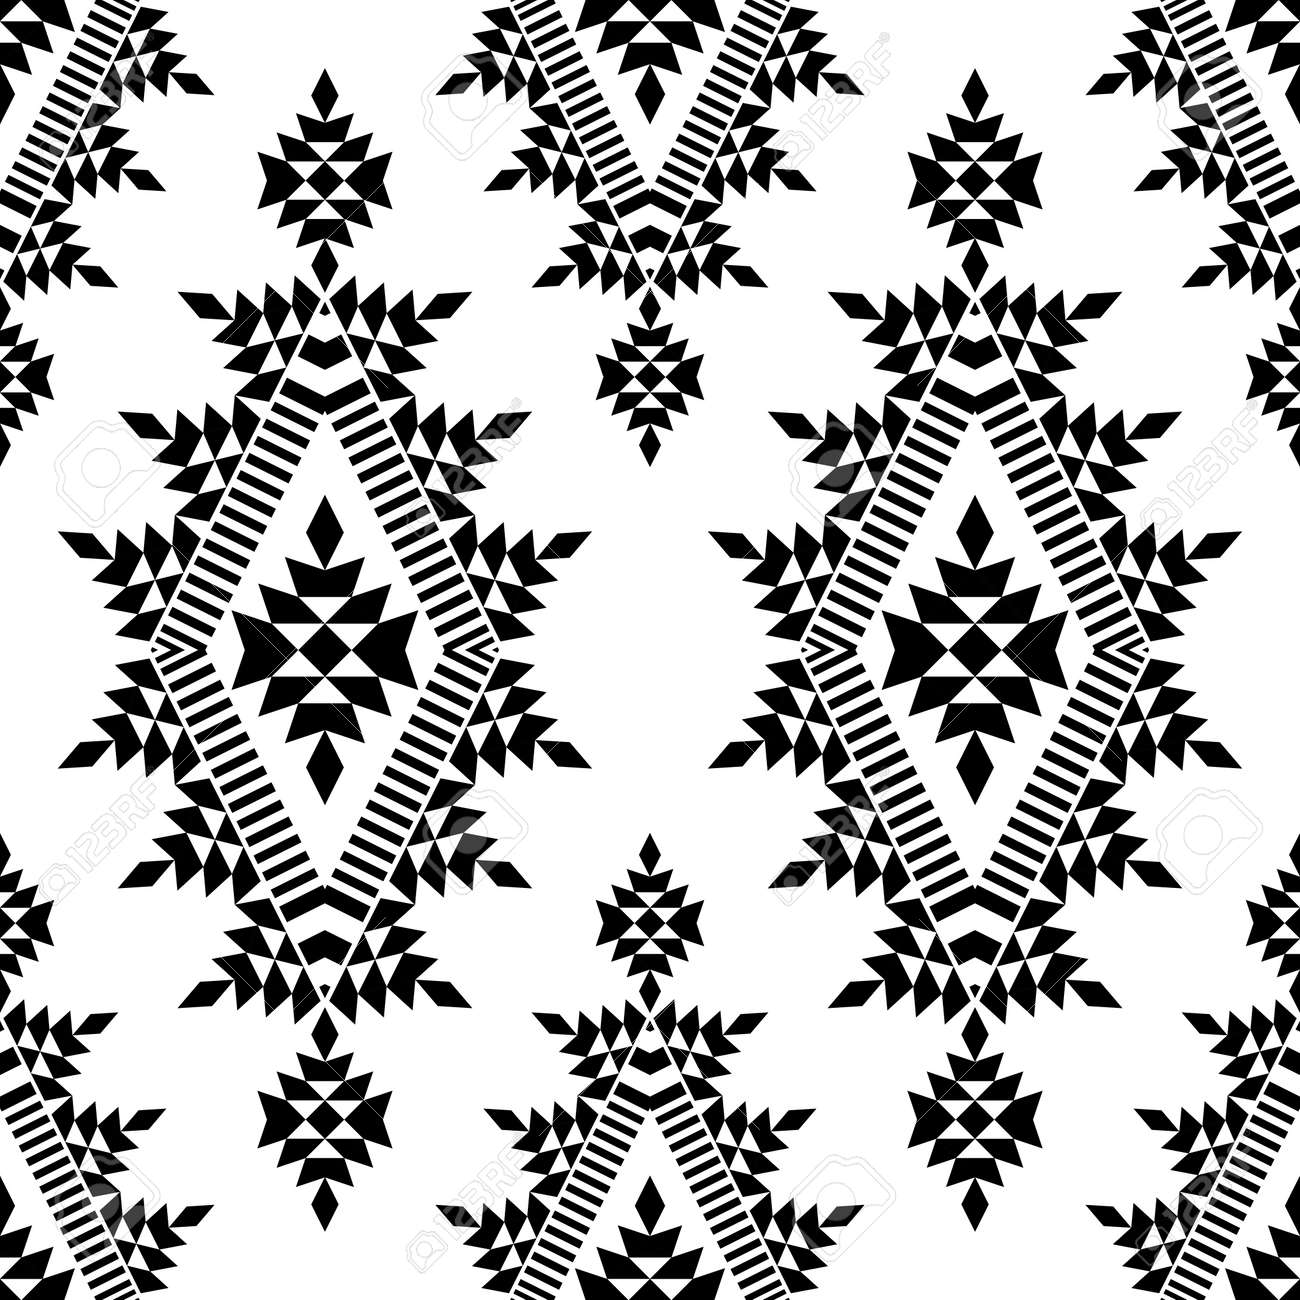 Ethnic boho seamless pattern. Lace. Embroidery on fabric. Patchwork texture. Weaving. Traditional ornament. Tribal pattern. Folk motif. Can be used for wallpaper, textile, wrapping, web. - 139544364